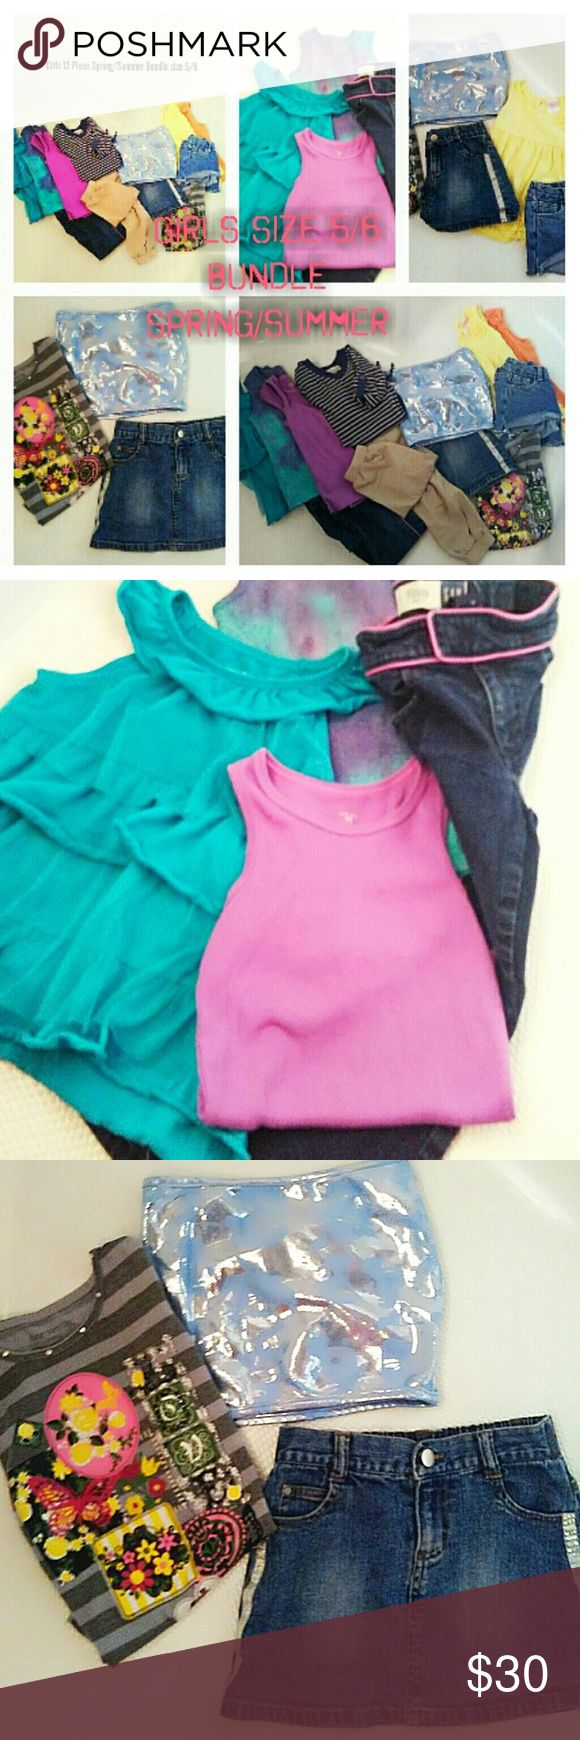 Girls sz 4/5/6 Huge Spring/ Summer Bundle Girls 12 Piece Size 4/5/6 Spring/Summer Bundle. Lots of Cute Stuff here for any little girl. 3 Girls Tanks purple, Tie Dye turquoise/ purple,1 Turquoise Ruffle Tank all size 5\6 with Gap jeans with purple line down side size 4. 1 jean skirt size 5, tube top size small,cute & comfy gray mix color Tee size 6x fits more like a 6,1 yellow swing tank size 4,2 pairs cut off jean shorts size 4,1 orange cotton tank size 4, 1 khaki cotton comfy pants size 4…